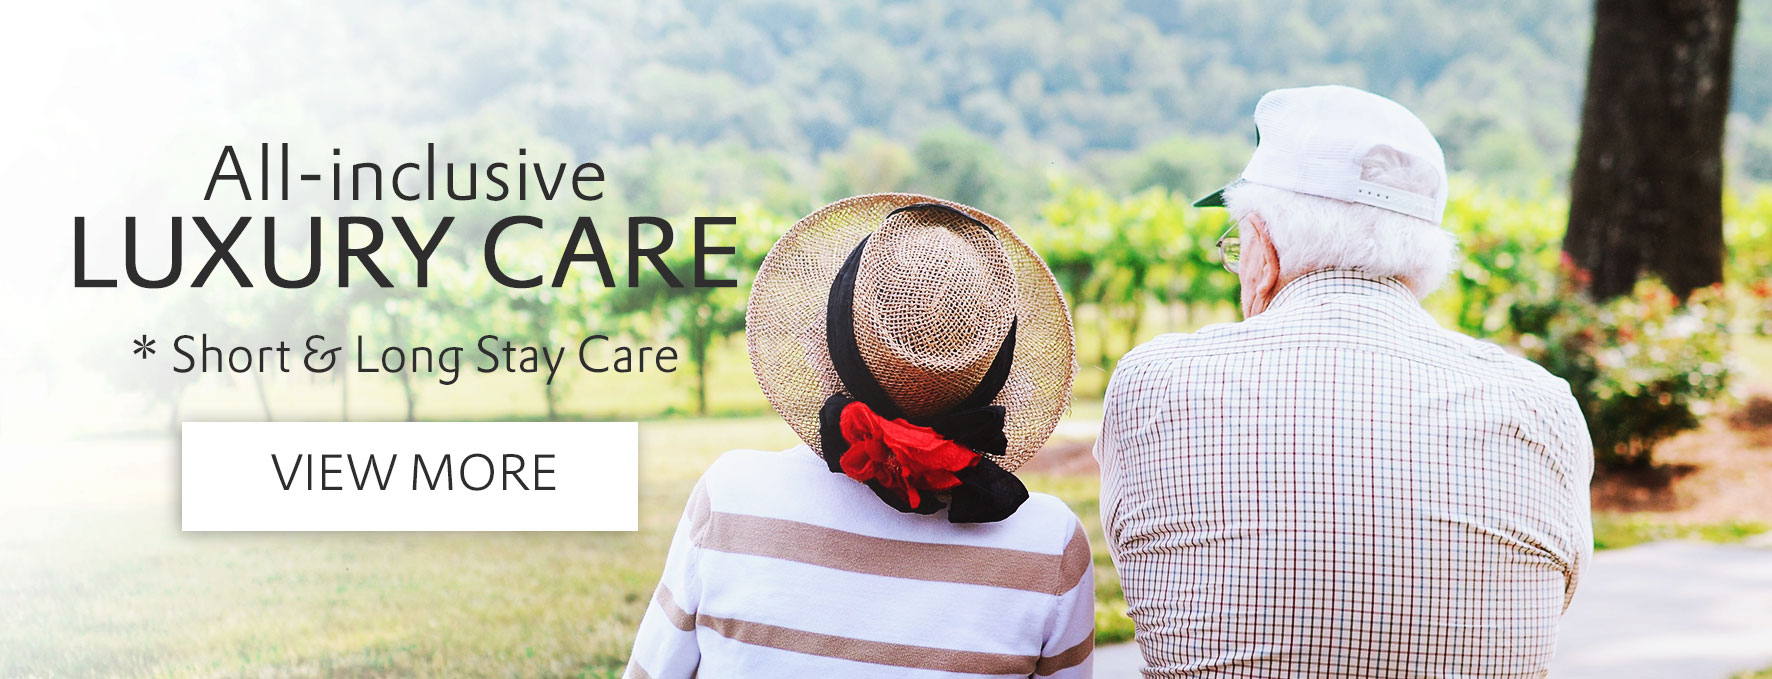 all inclusive luxury retirement care homes